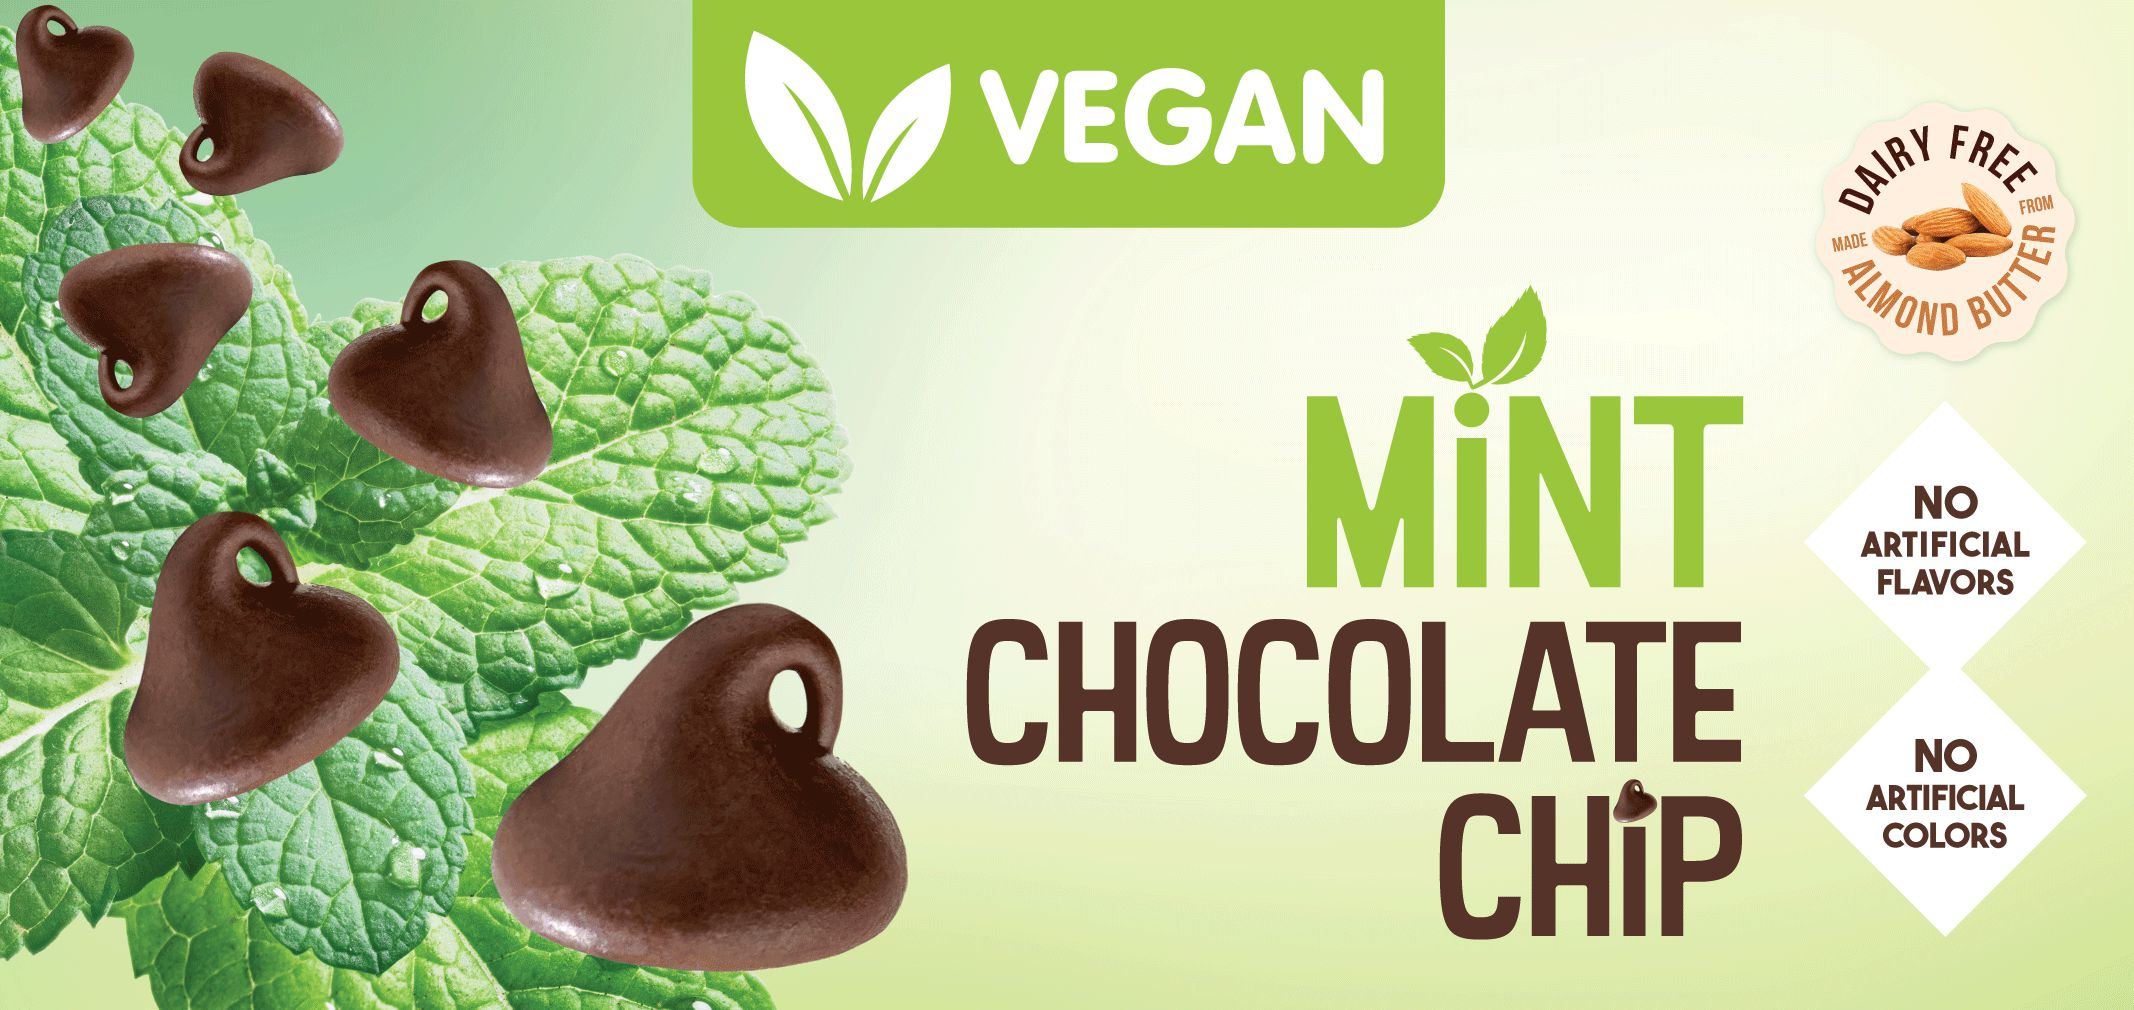 vegan mint chocolate chip made with almond butter label image